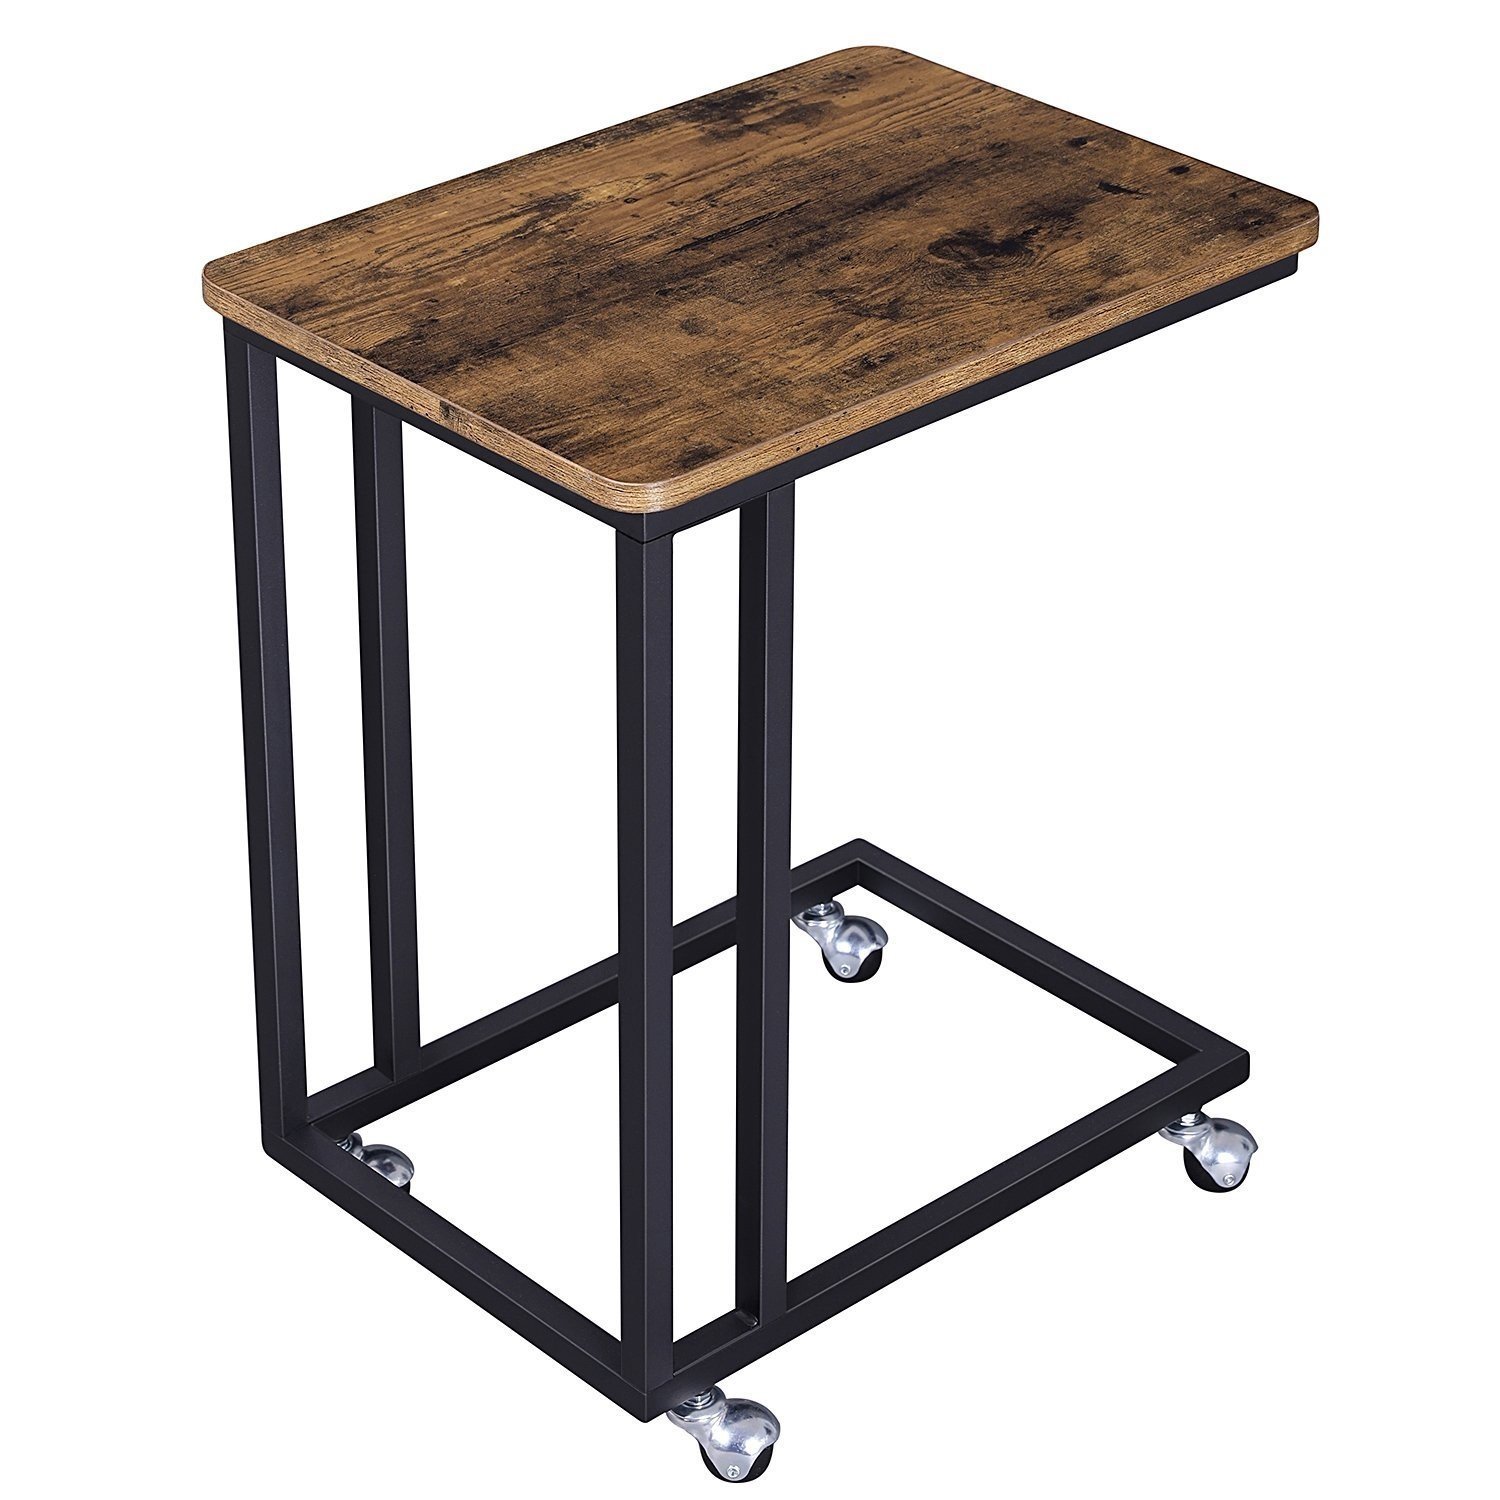 Indoor Multi-function Accent table Study Computer Home Office Desk Bedroom Living Room Modern Style End Table Sofa Side Table Coffee Table Mobile Snack Table